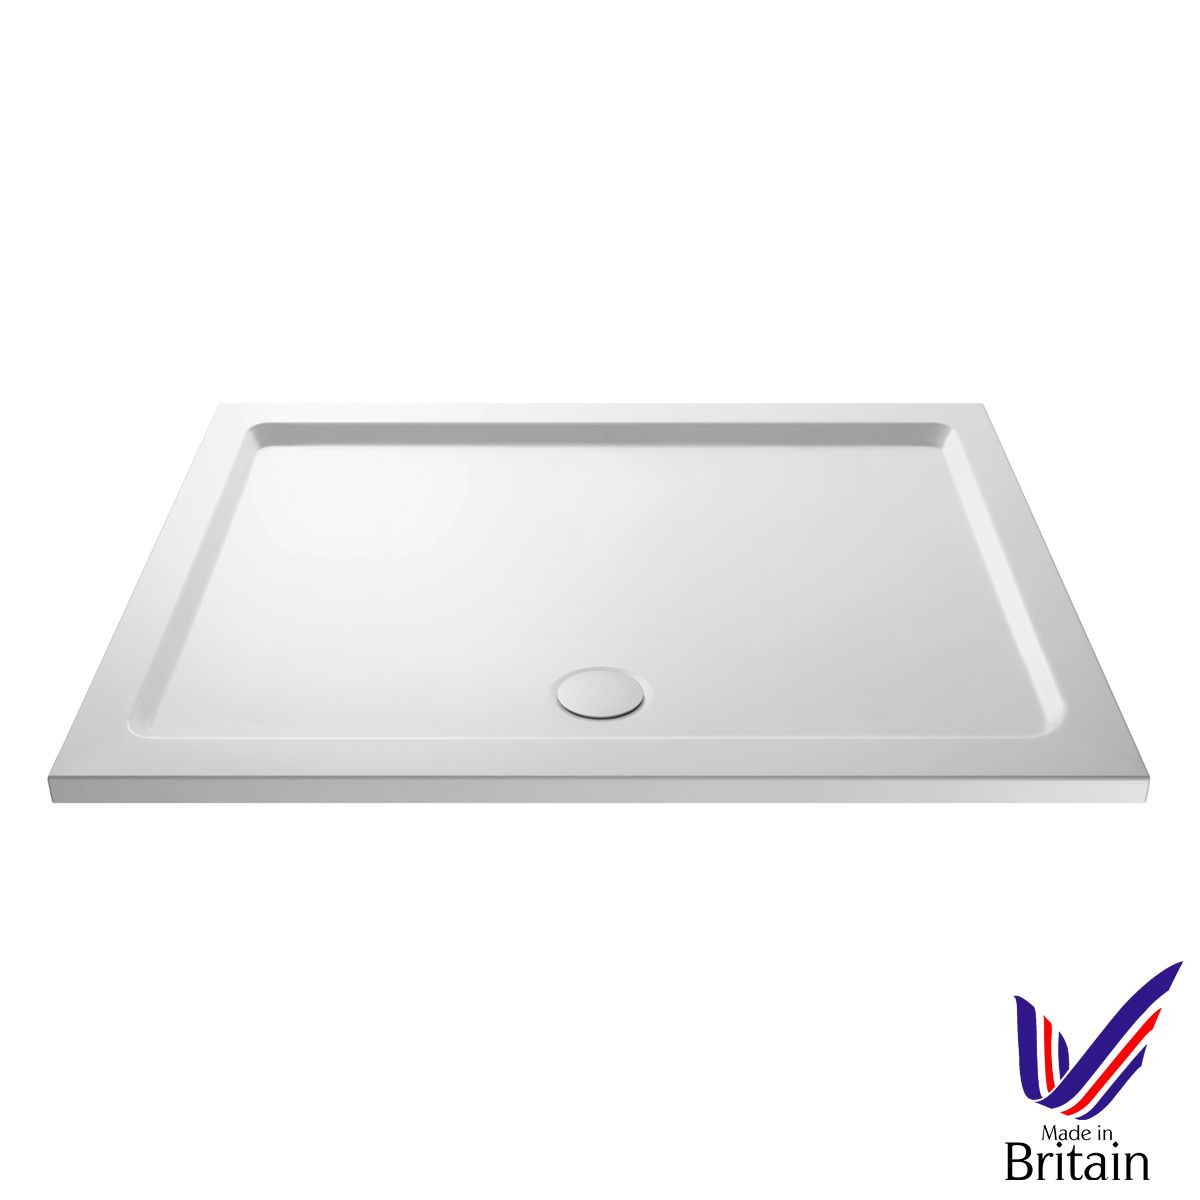 1400 x 760 Shower Tray Rectangular Low Profile by Pearlstone